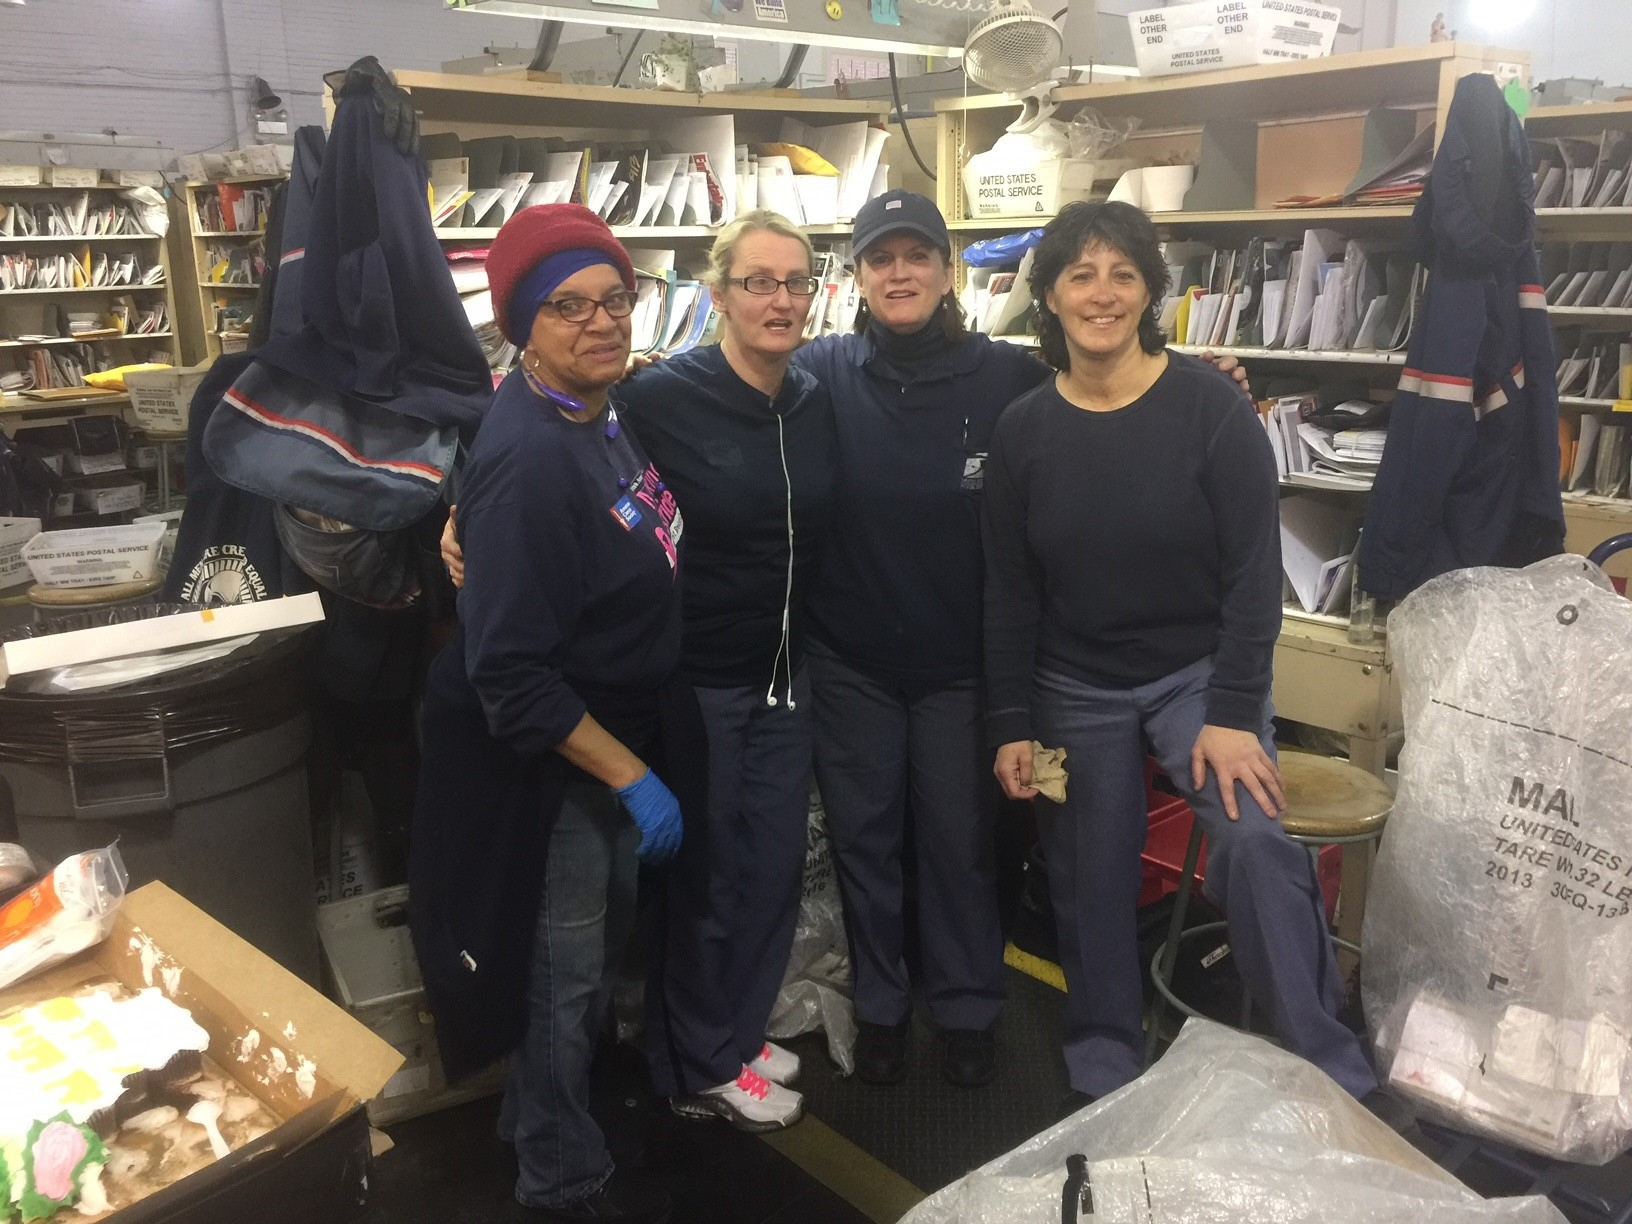 Newly Retired Brookline Member Eleanor Walsh (2nd from Right) with APWU Steward Wanda Jackson, FTR Carrier Kristen O'Connor and NALC Steward Maria Constantino